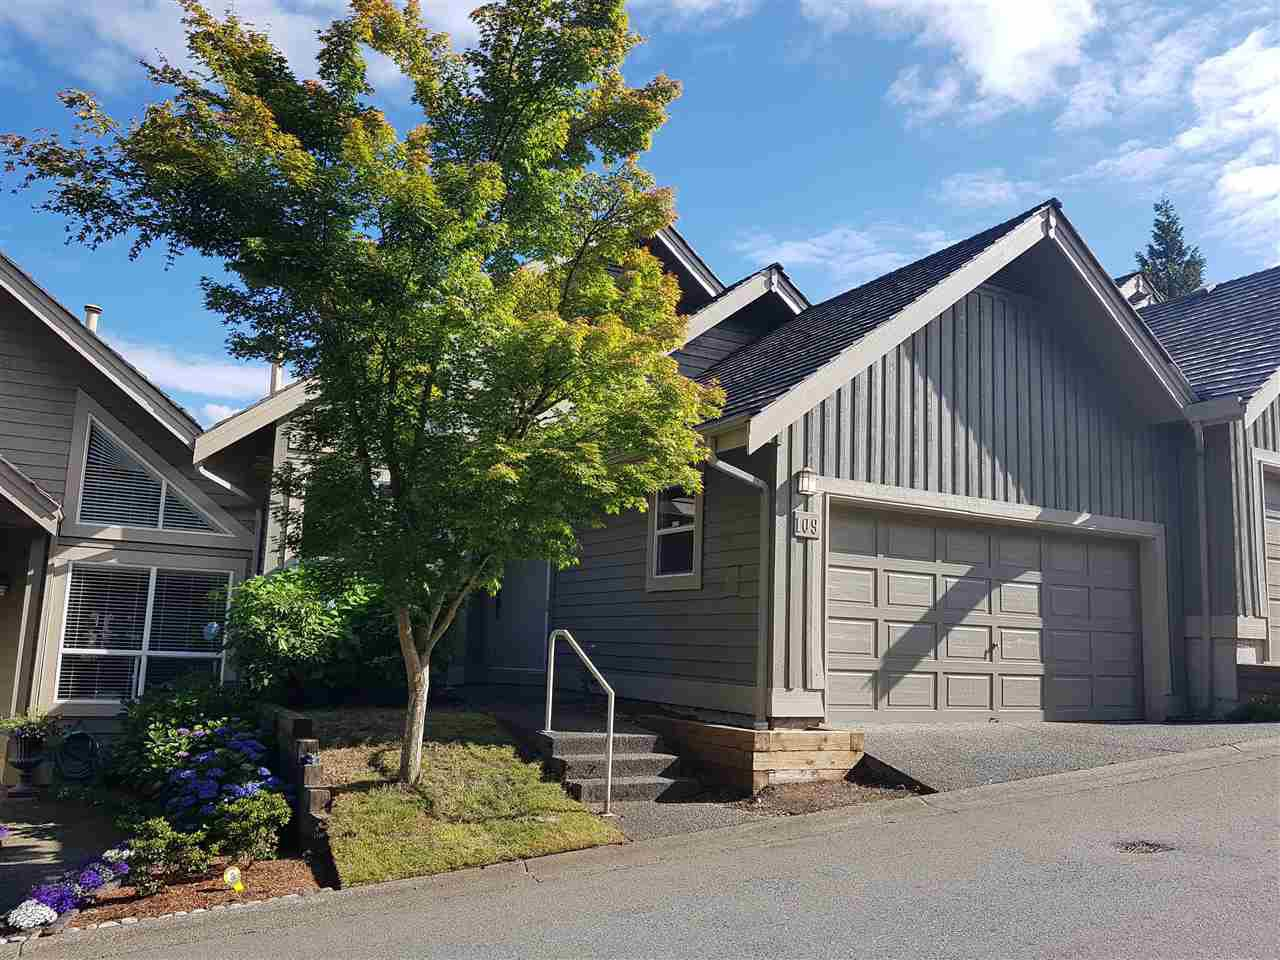 Main Photo: 109 1465 PARKWAY BOULEVARD in Coquitlam: Westwood Plateau Townhouse for sale : MLS®# R2385560